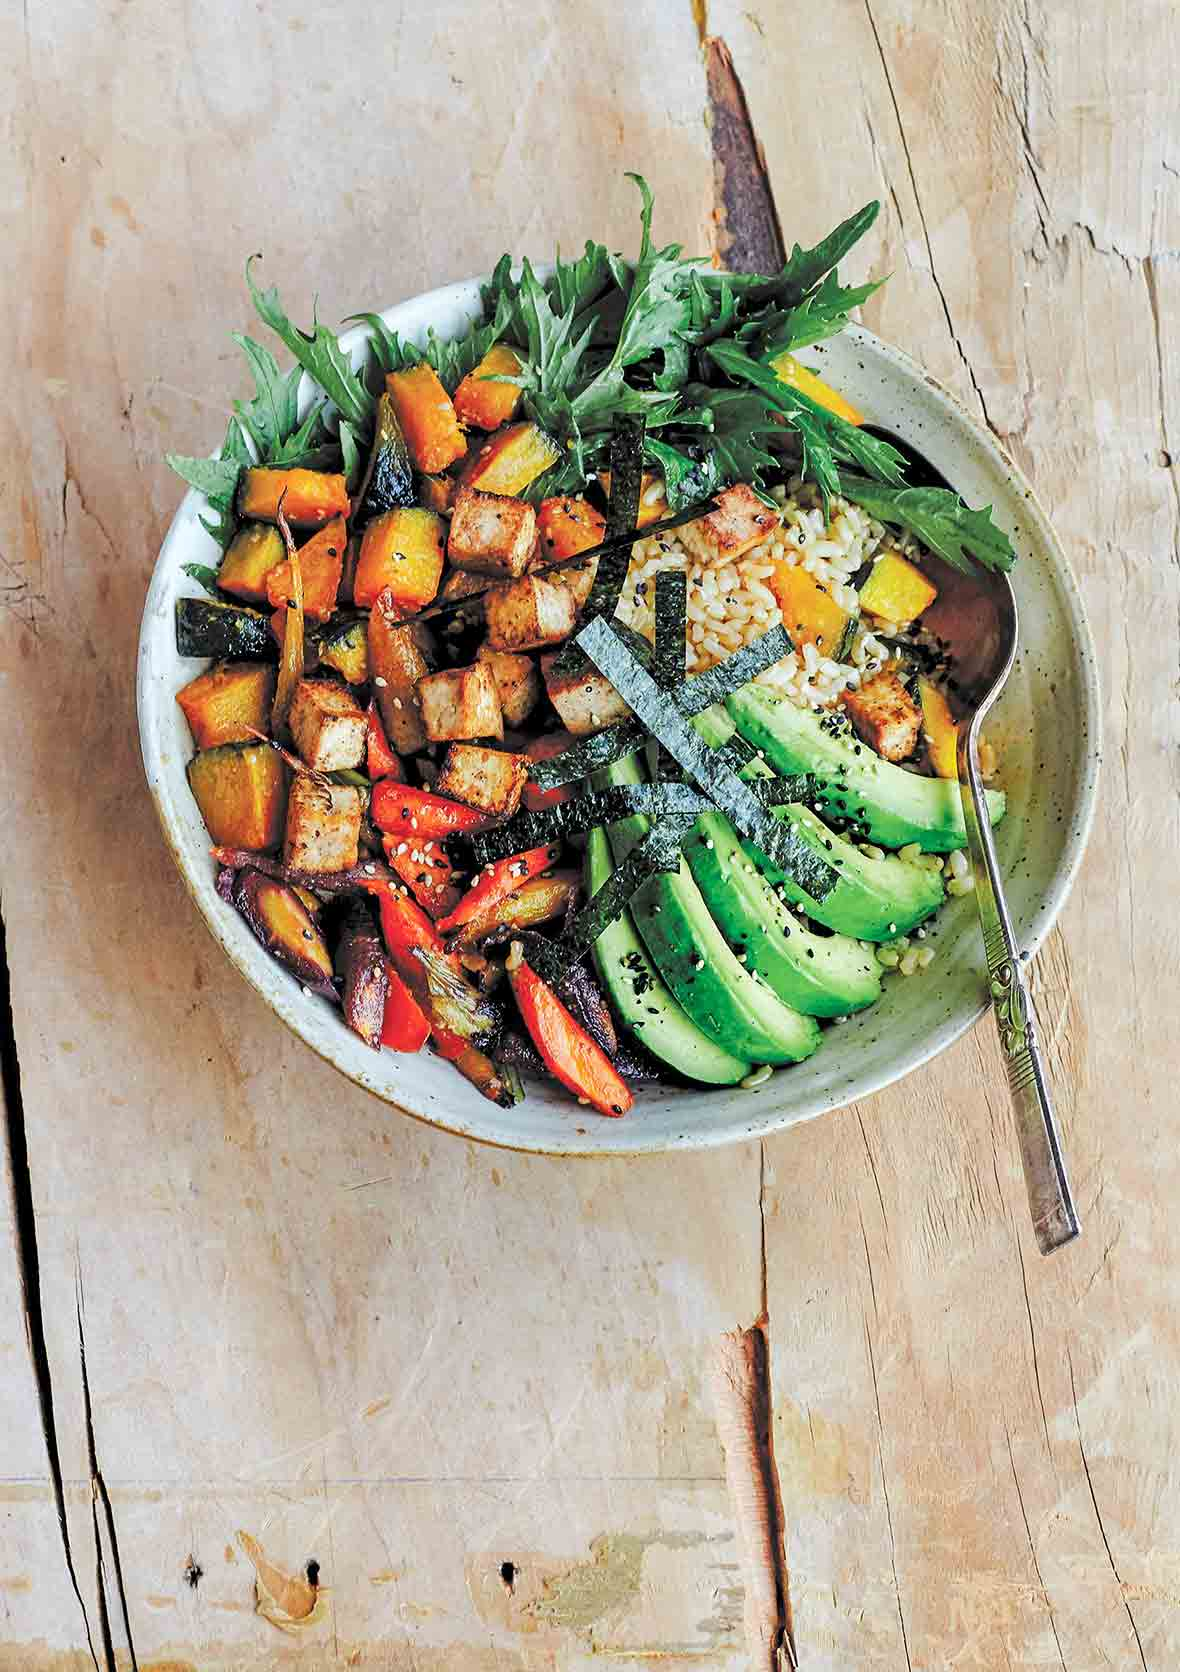 A bowl of miso-glazed kabocha squash with carrots, avocado, salad greens, seaweed over brown rice